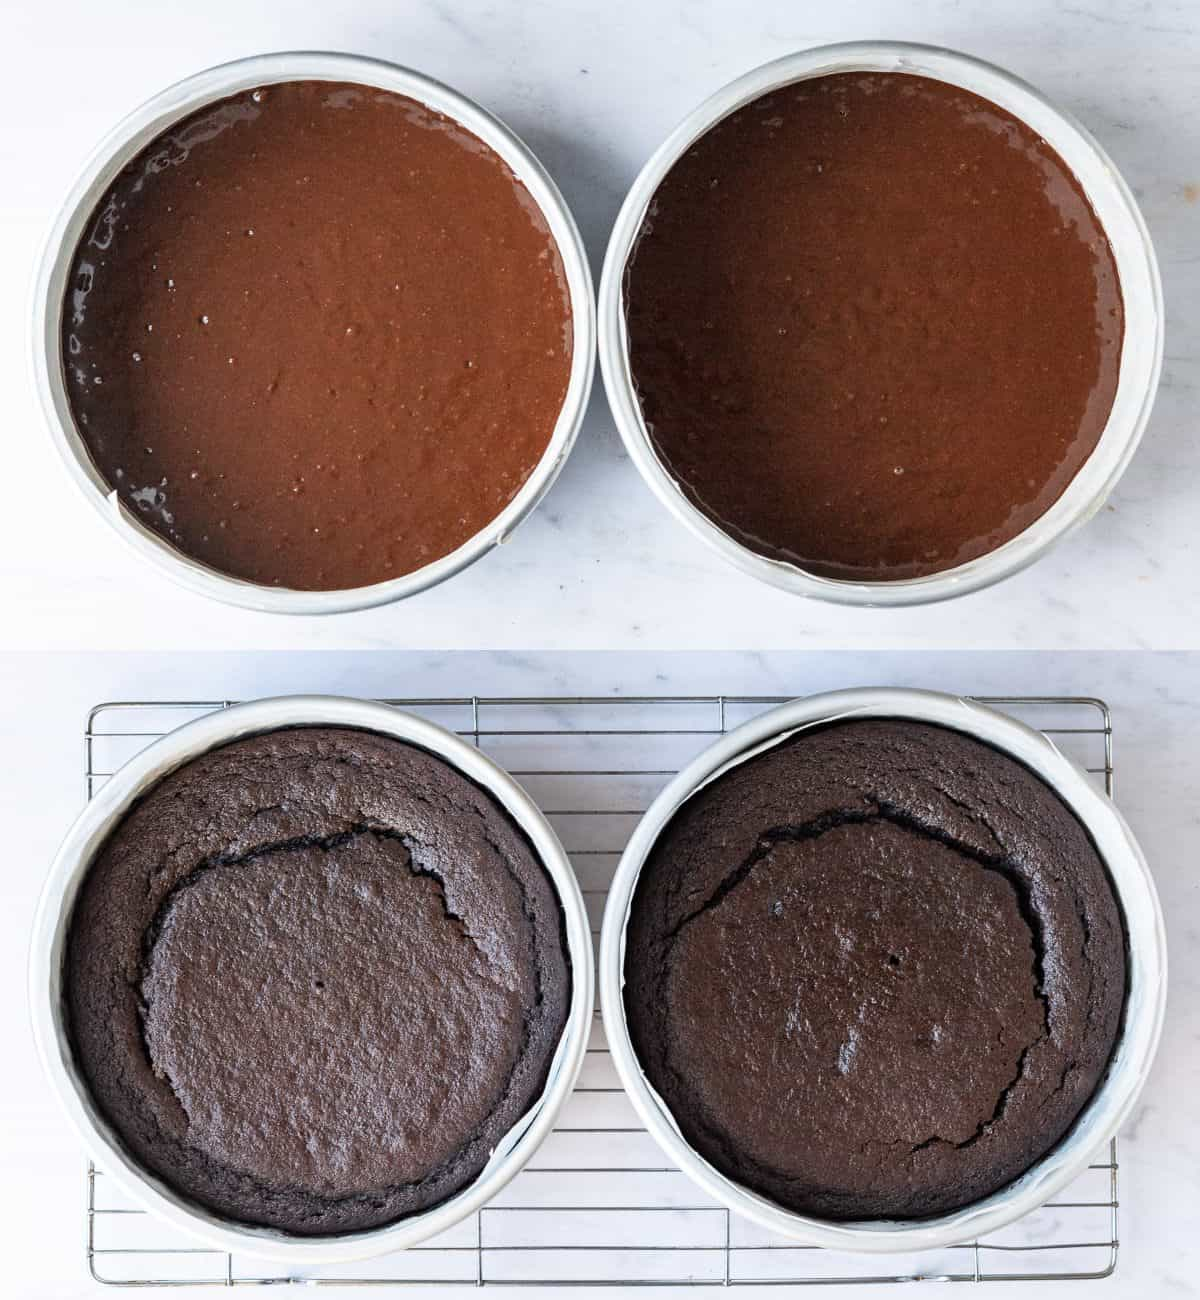 Step 2 - baking the cakes.